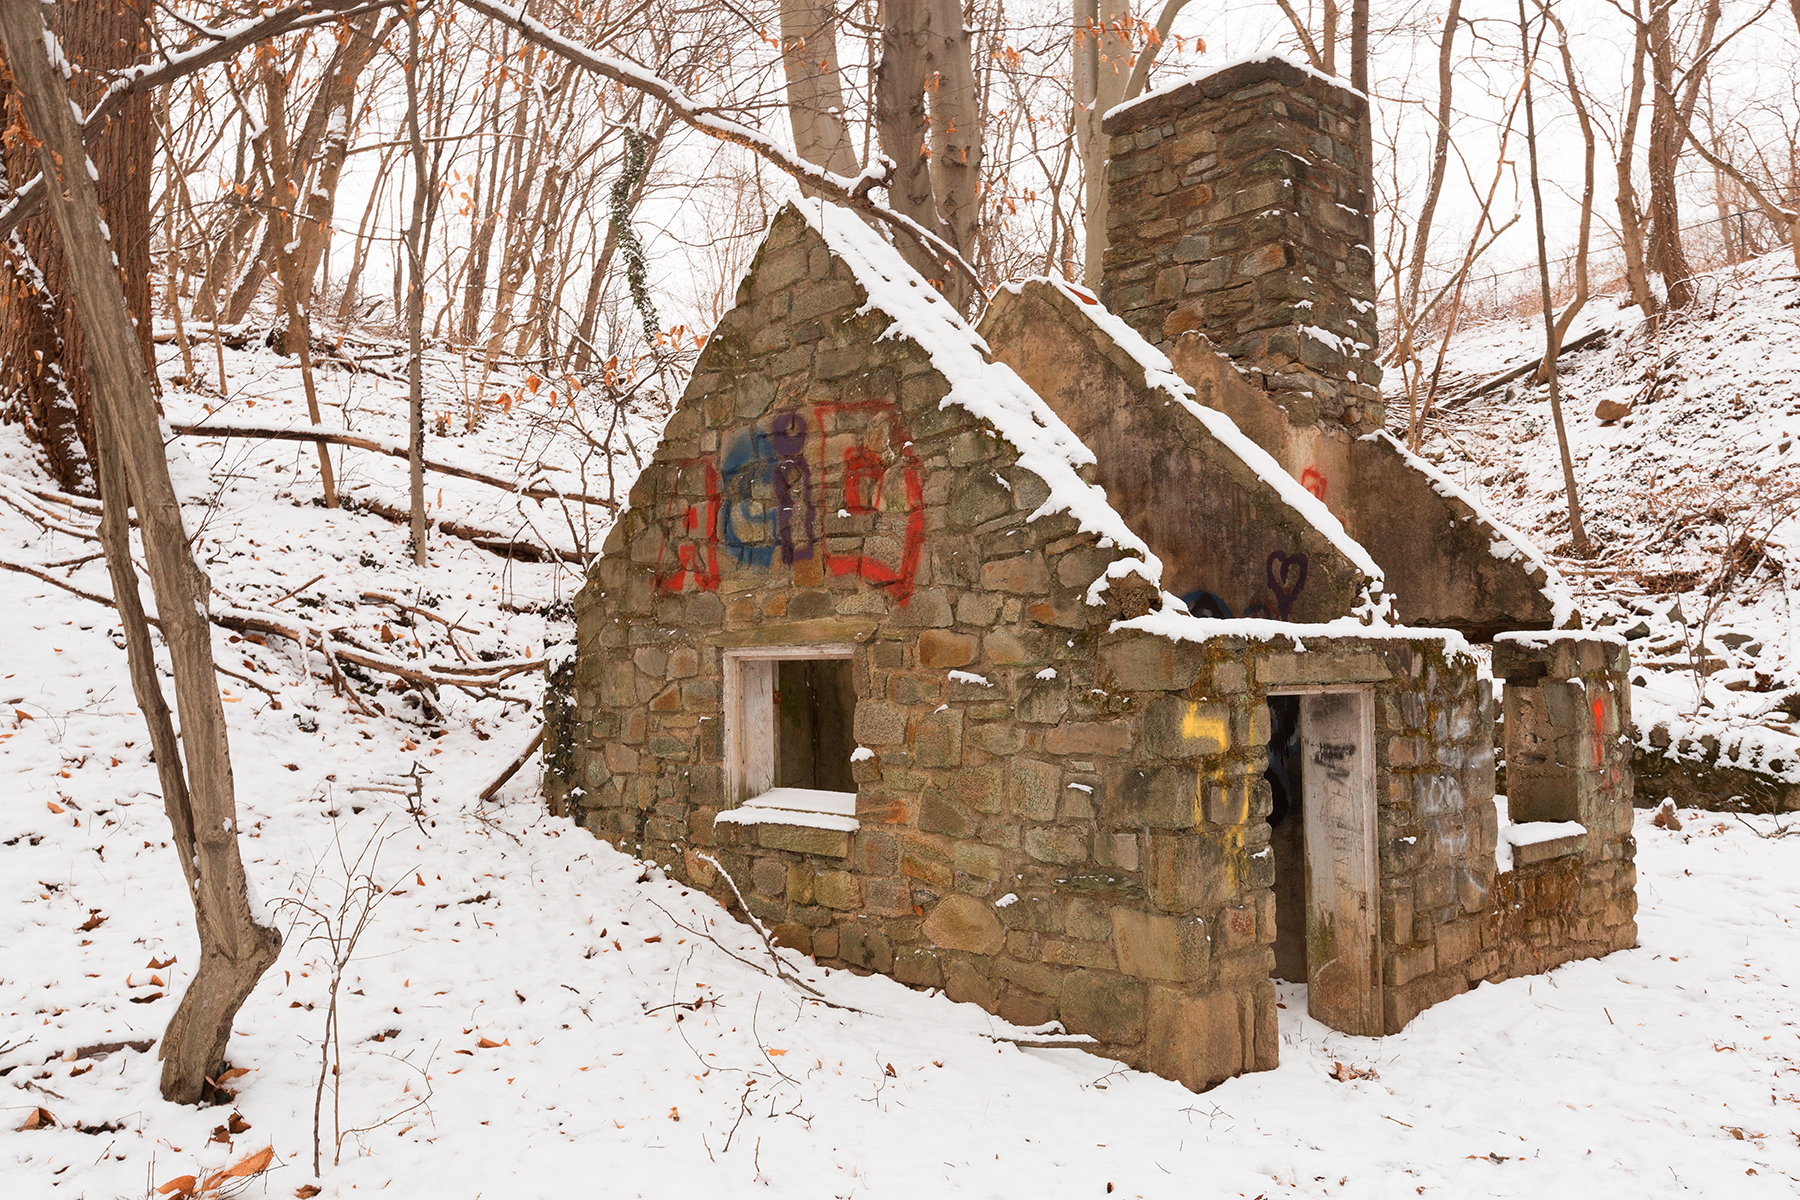 Winter Acid Ruins, , Rocks, Stained, Stain, HQ Photo